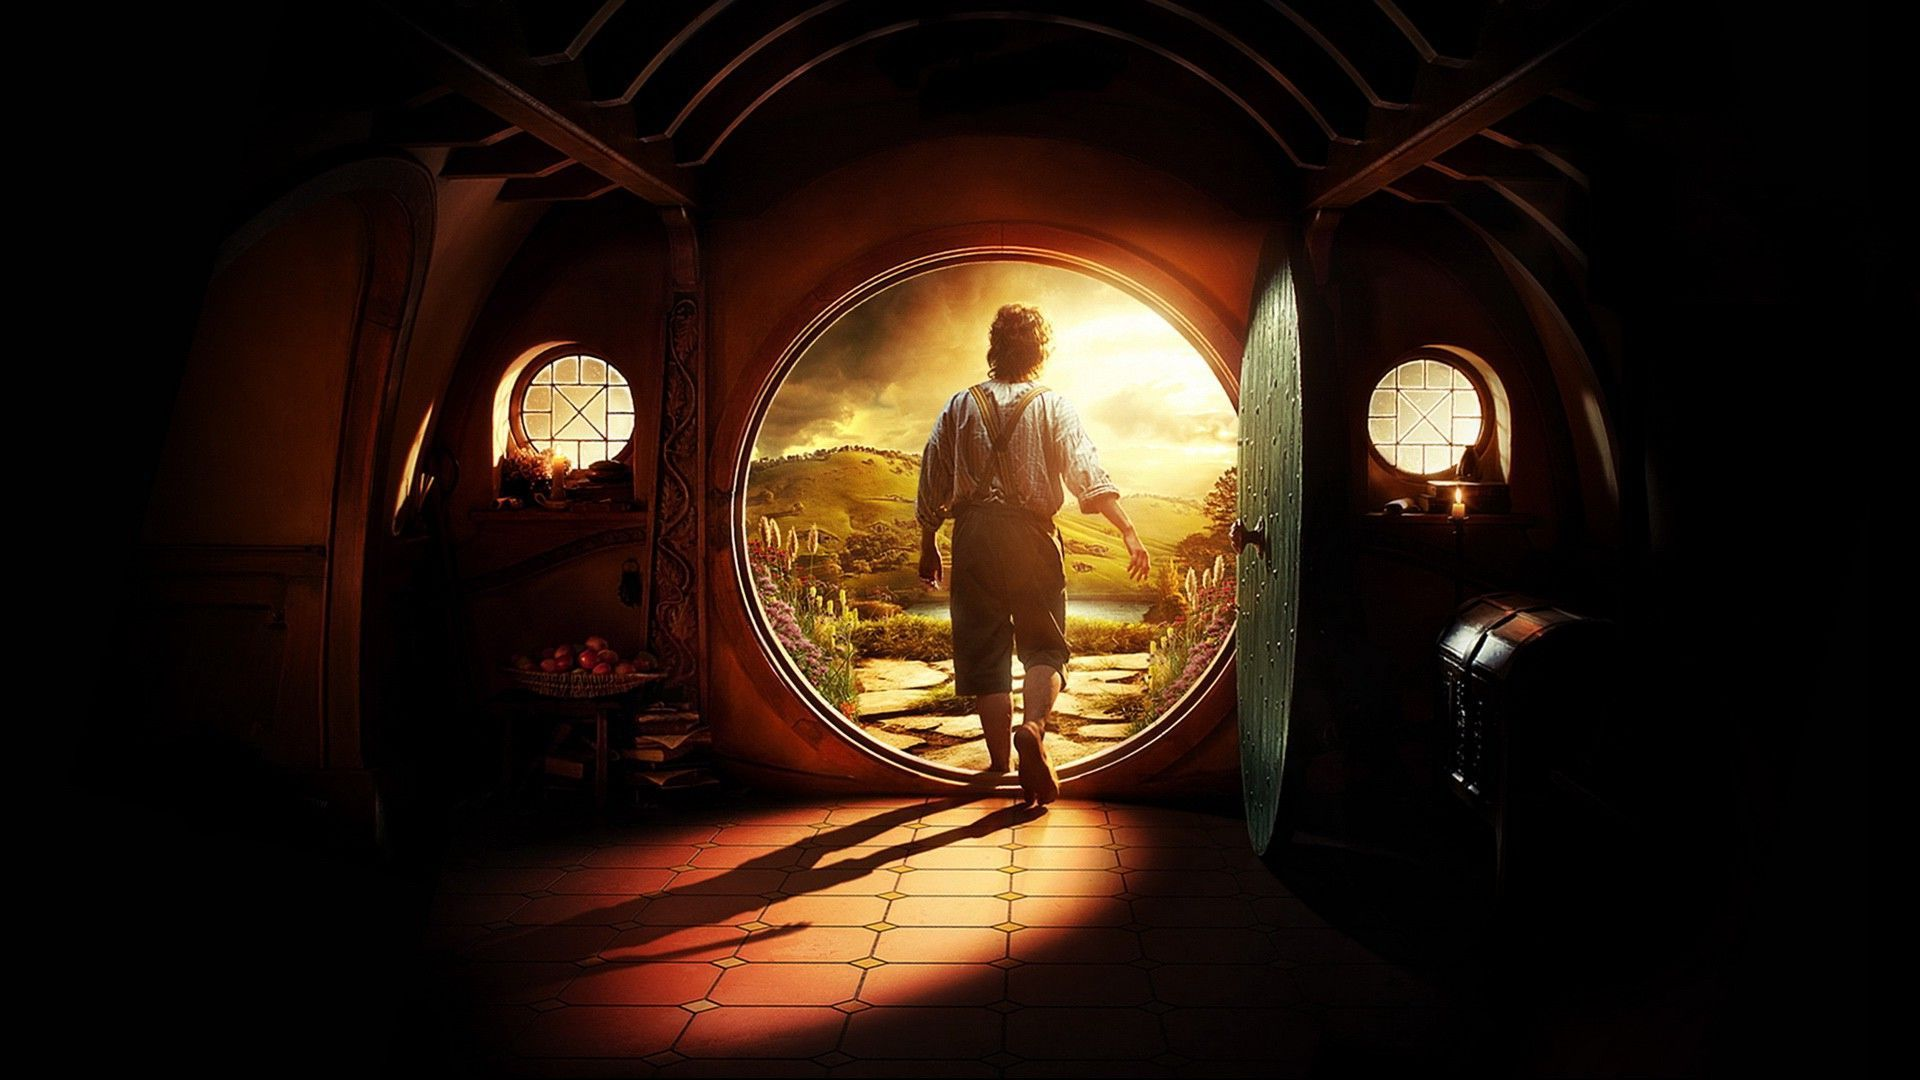 The Hobbit Wallpapers HD 1920x1080